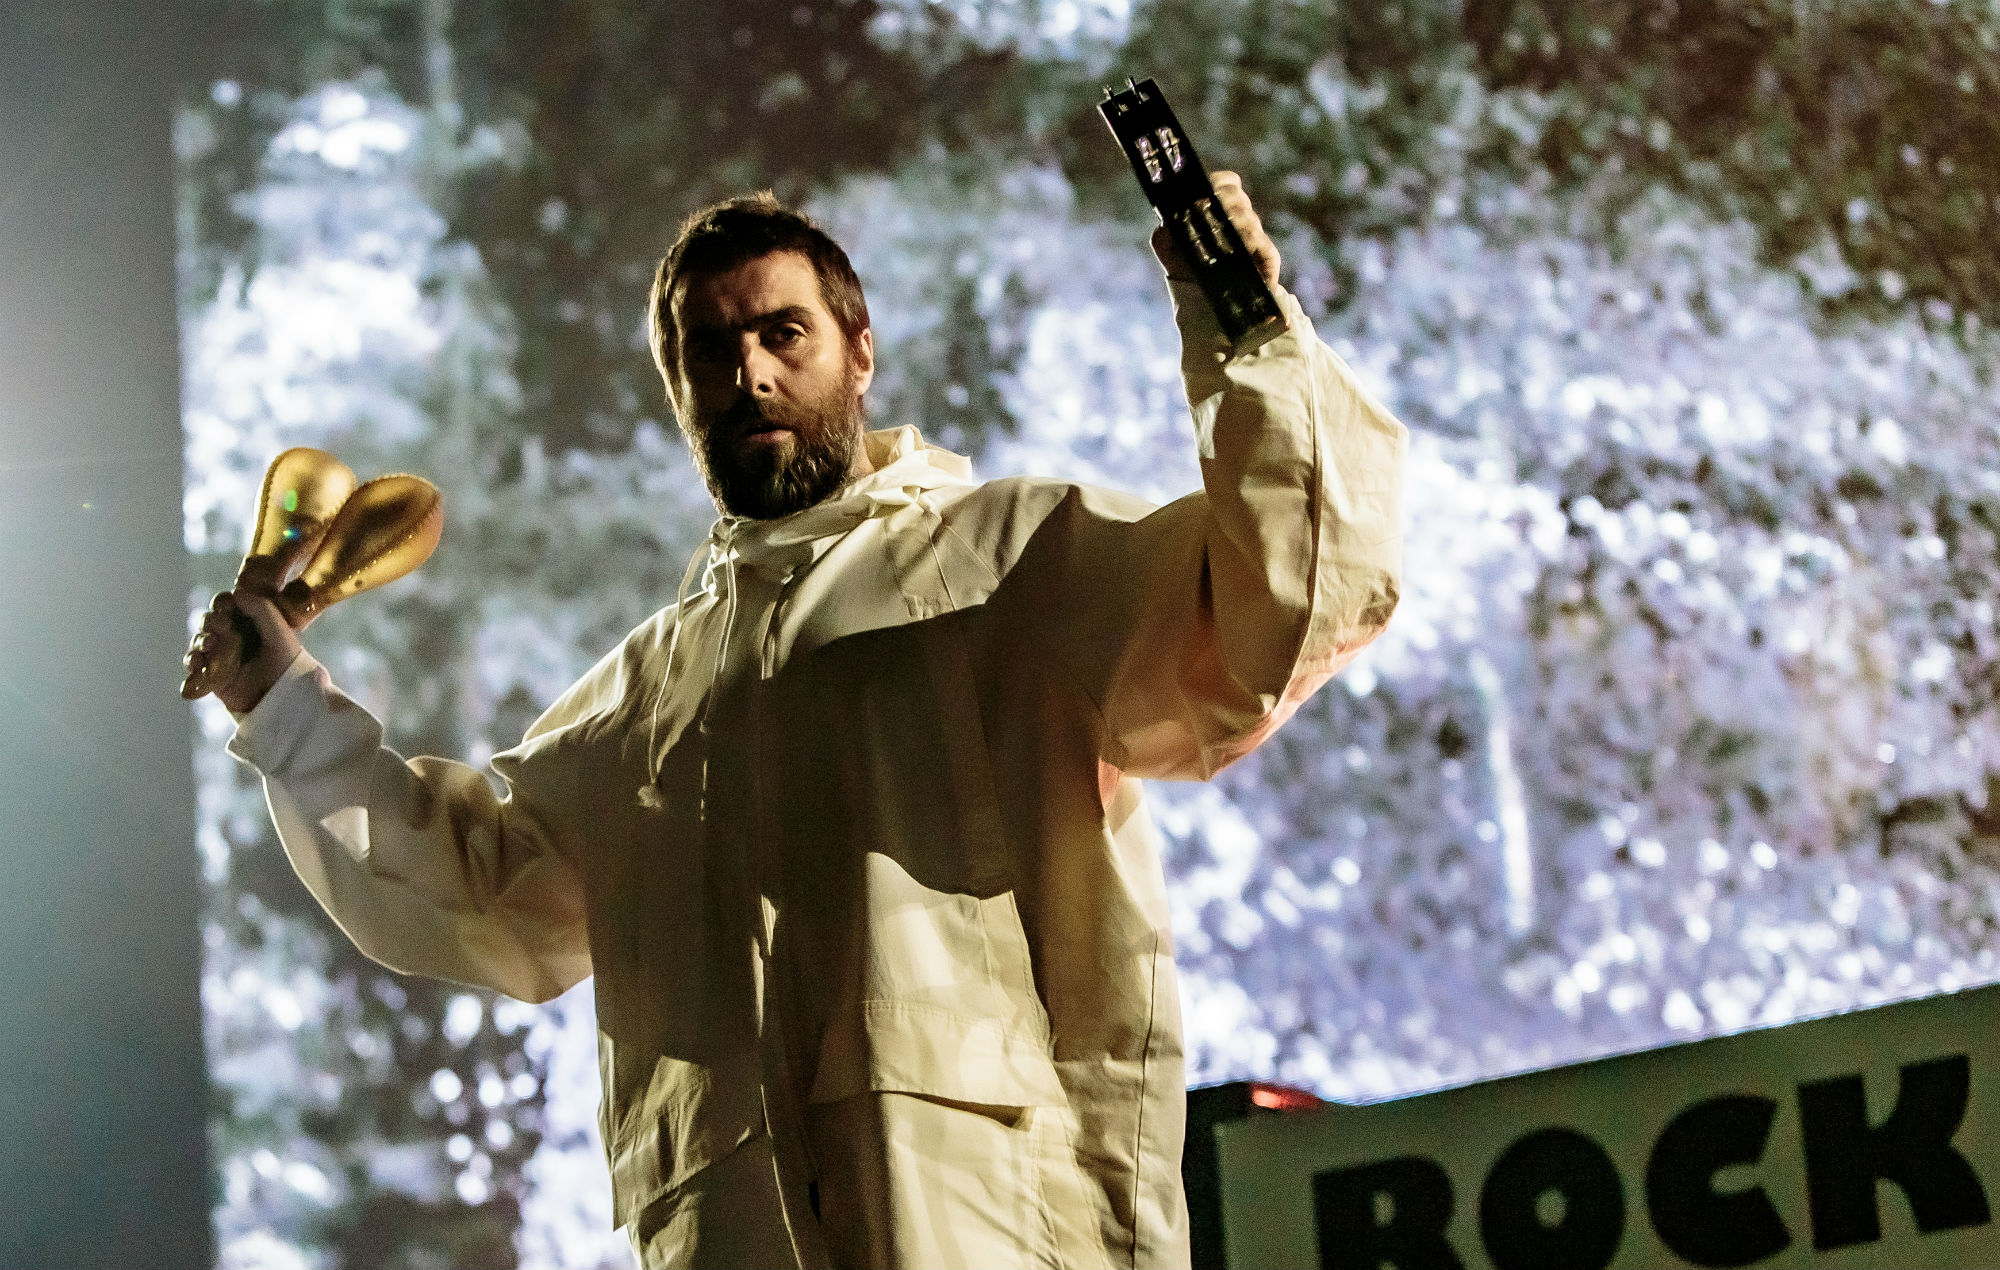 Liam Gallagher says he could play Knebworth on his own